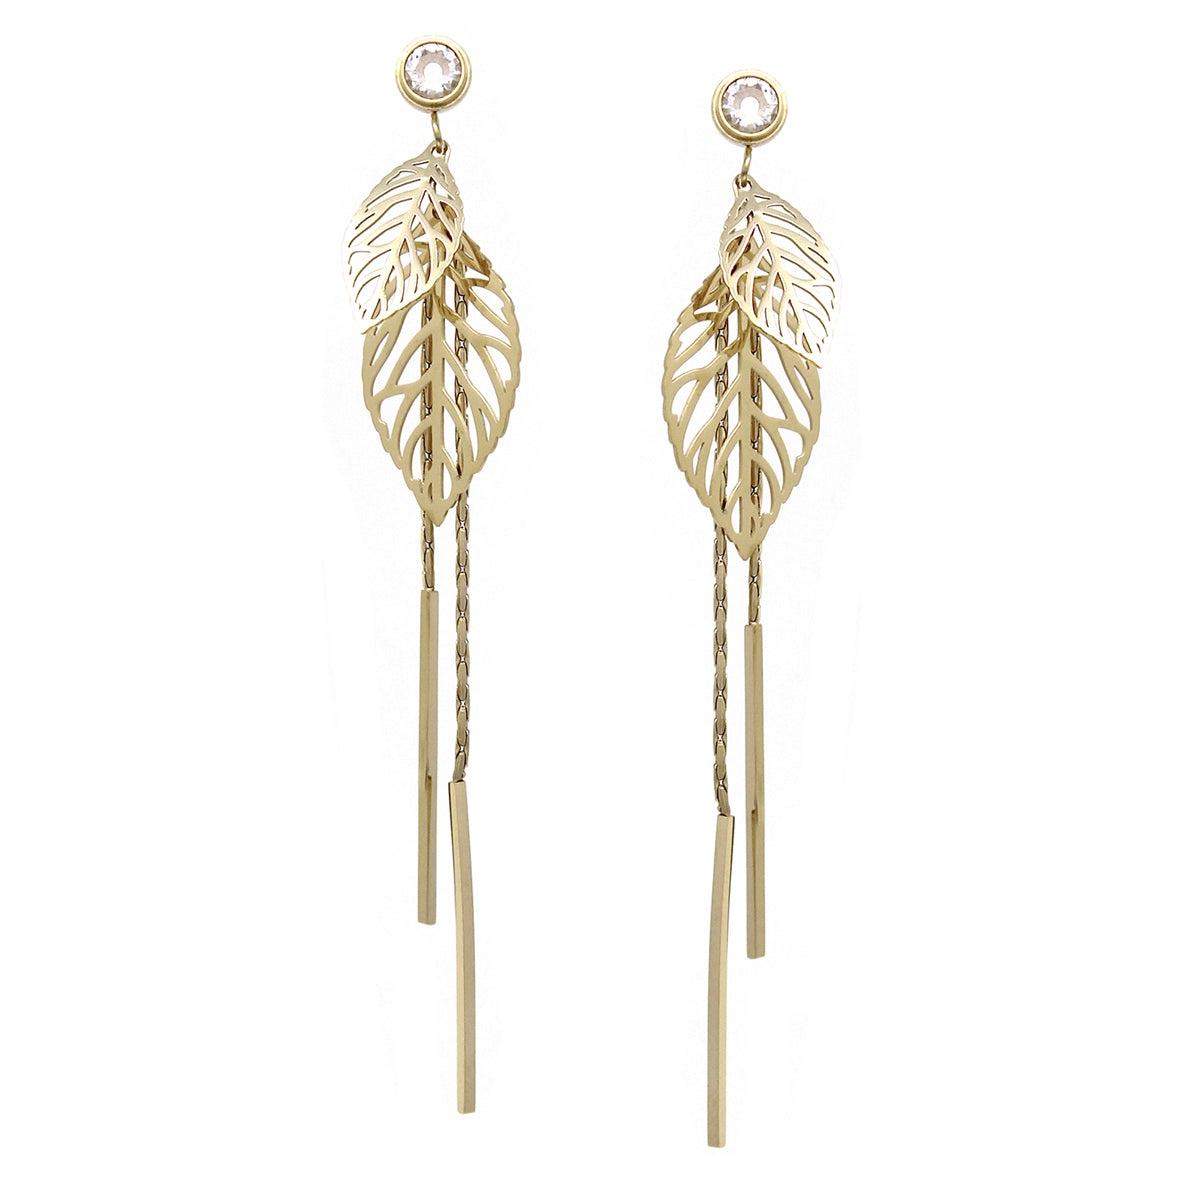 Stainless Steel Laser Cut Leaf With Cubic Zirconia Long Drop Earrings